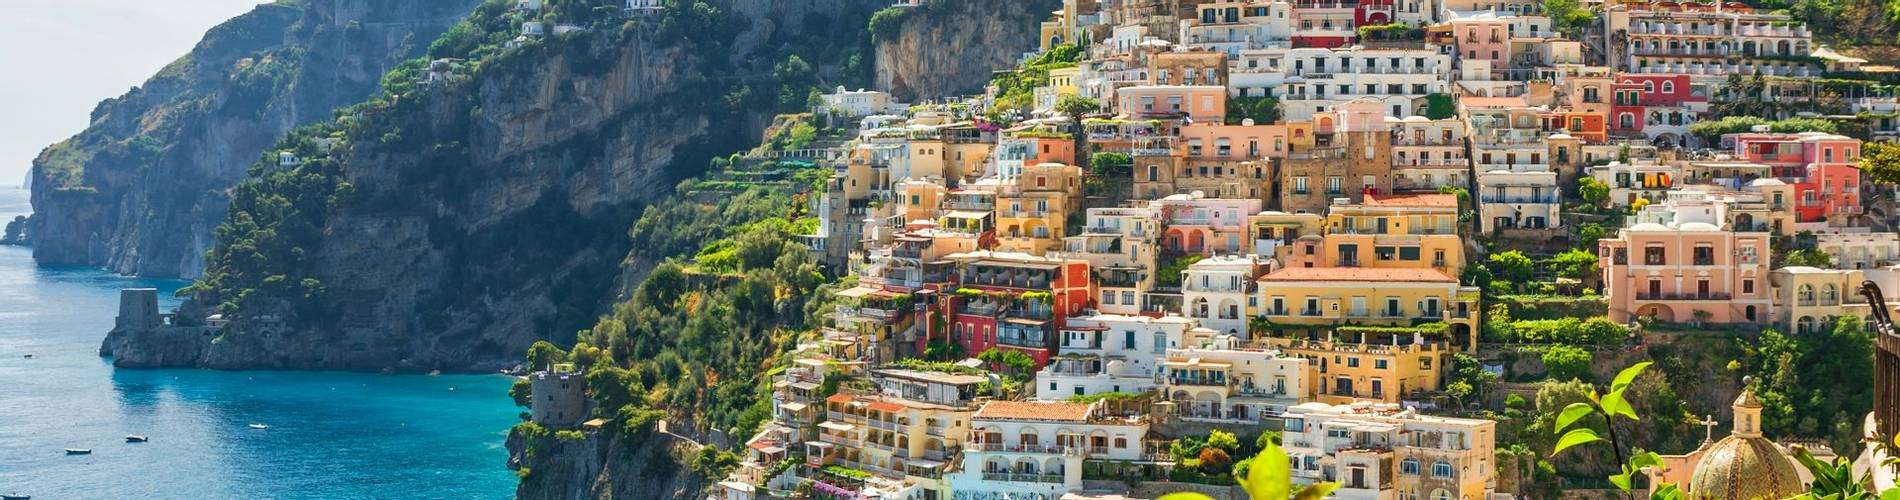 Amalfi coast view.jpg